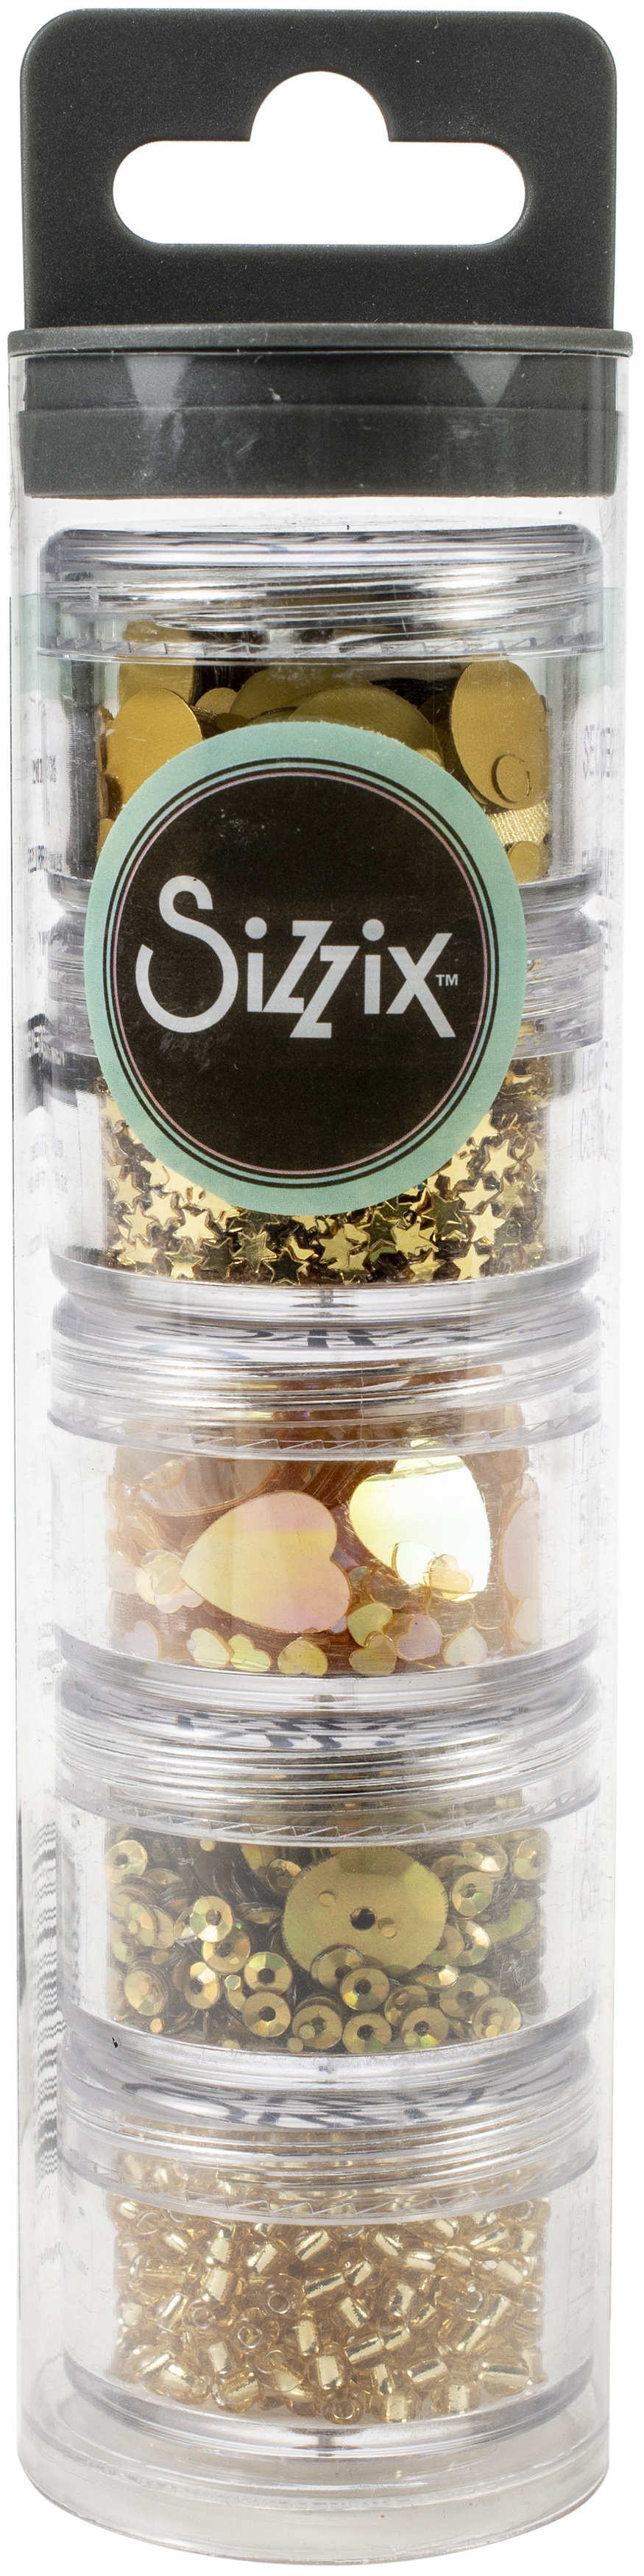 Sizzix Making Essential Sequins & Beads 5/Pkg-Agave, 5g Per Pot-Click to see all!